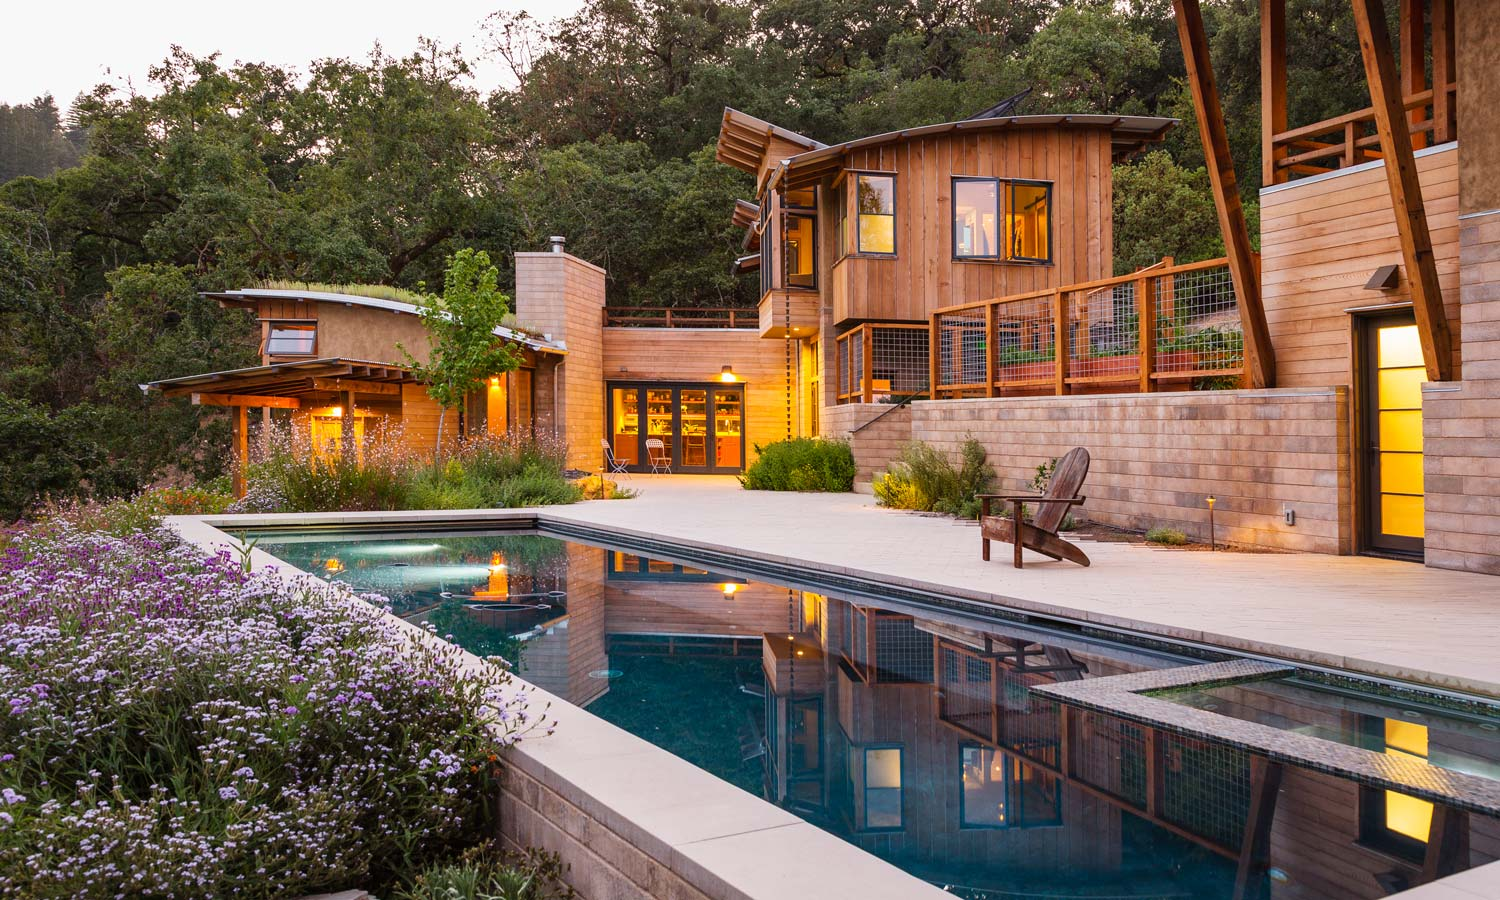 Rammed Earth Works - Original Builders - Consulting Services on from the earth homes, mini earth homes, geo earth homes, old earth homes, the earliest rammed earth homes, earth built homes,